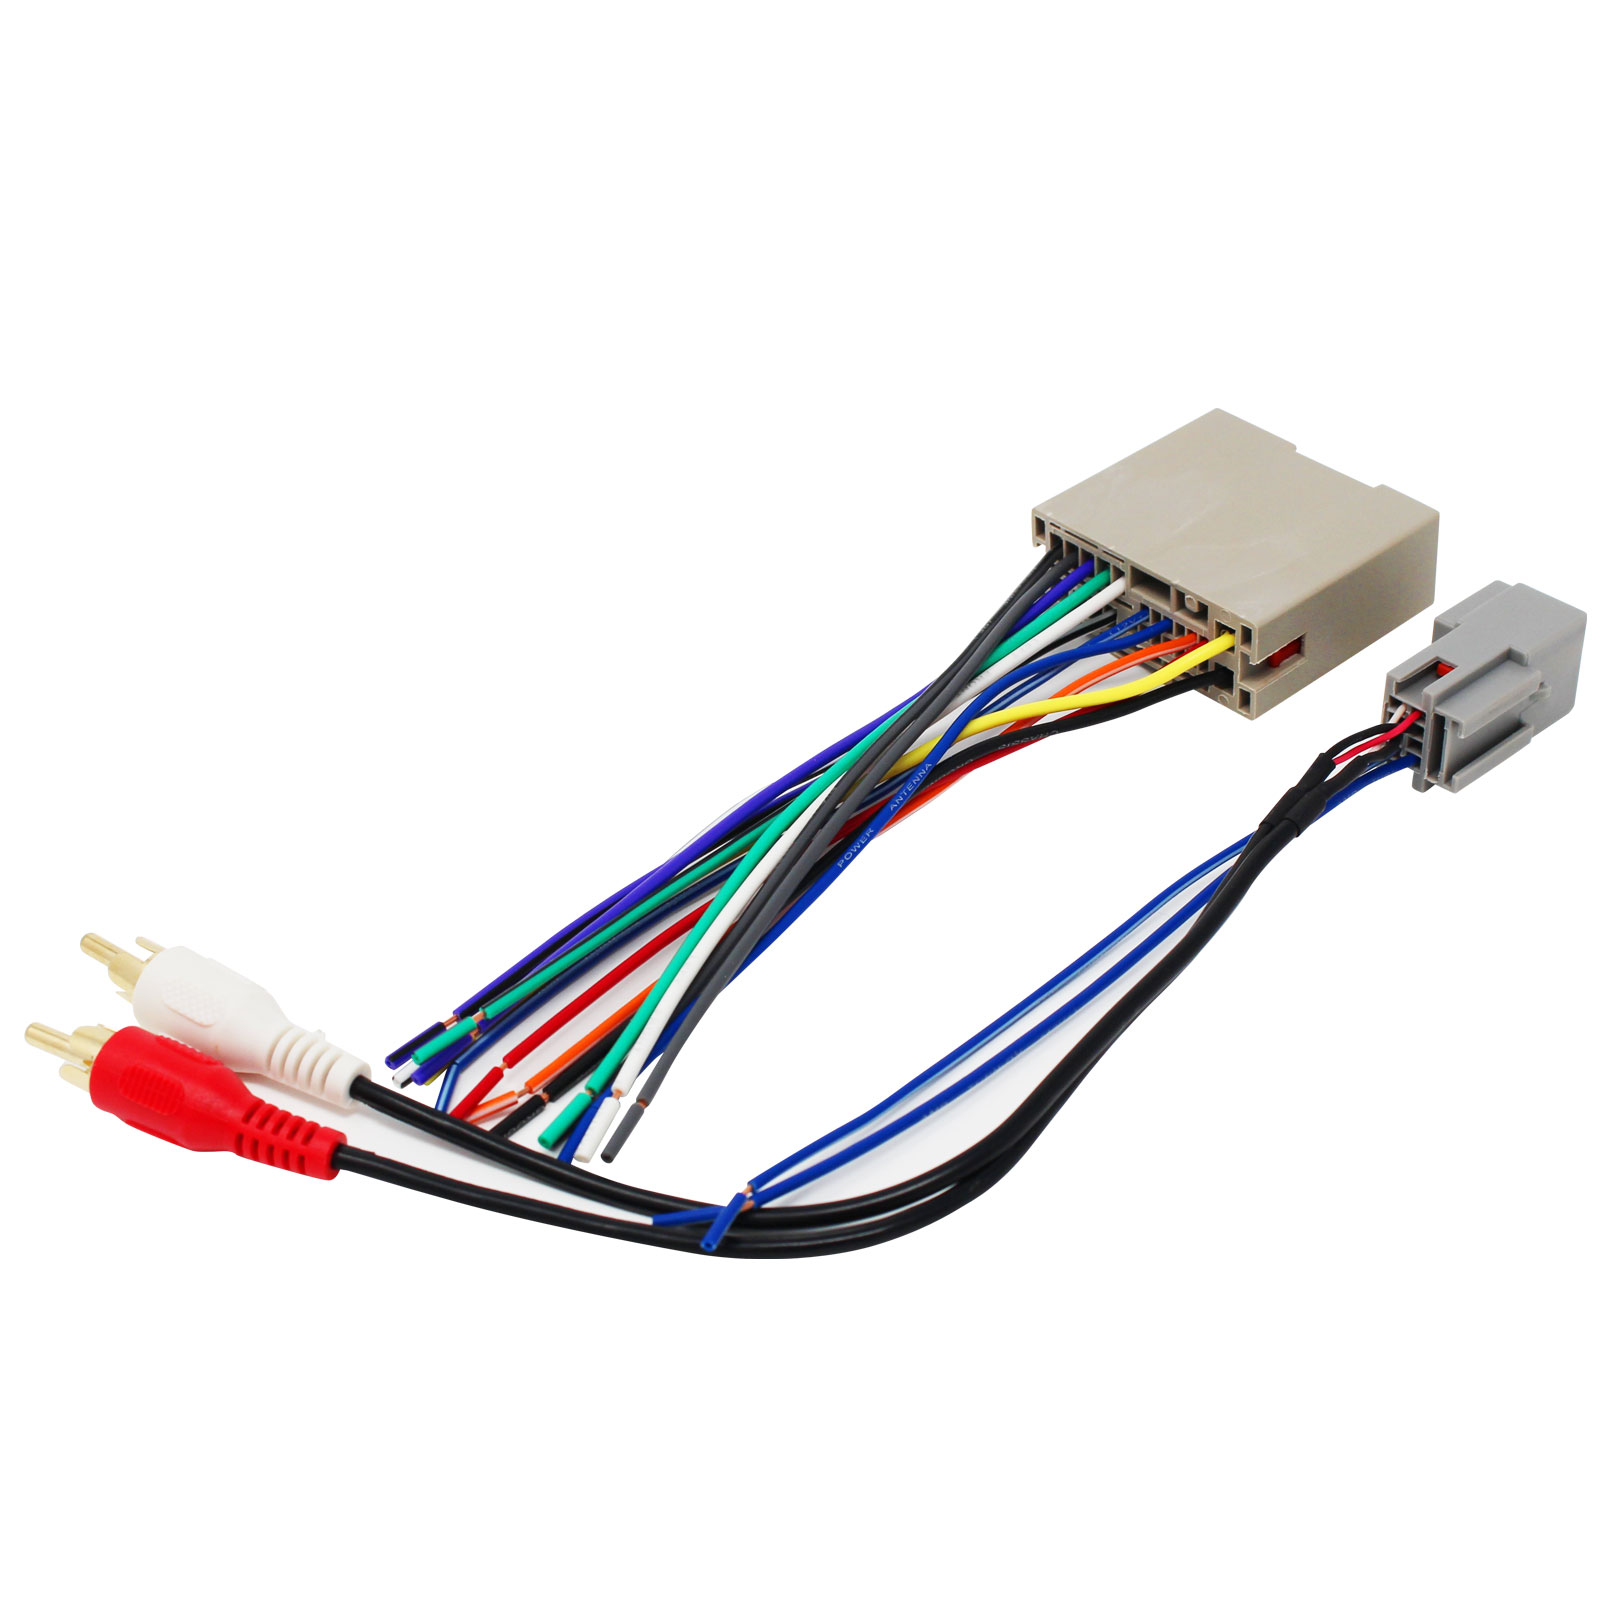 2-Pack Replacement Radio Wiring Harness for 2007 Ford Focus SE Wagon 5-Door 2.0L - Car Stereo Connector - image 3 of 4